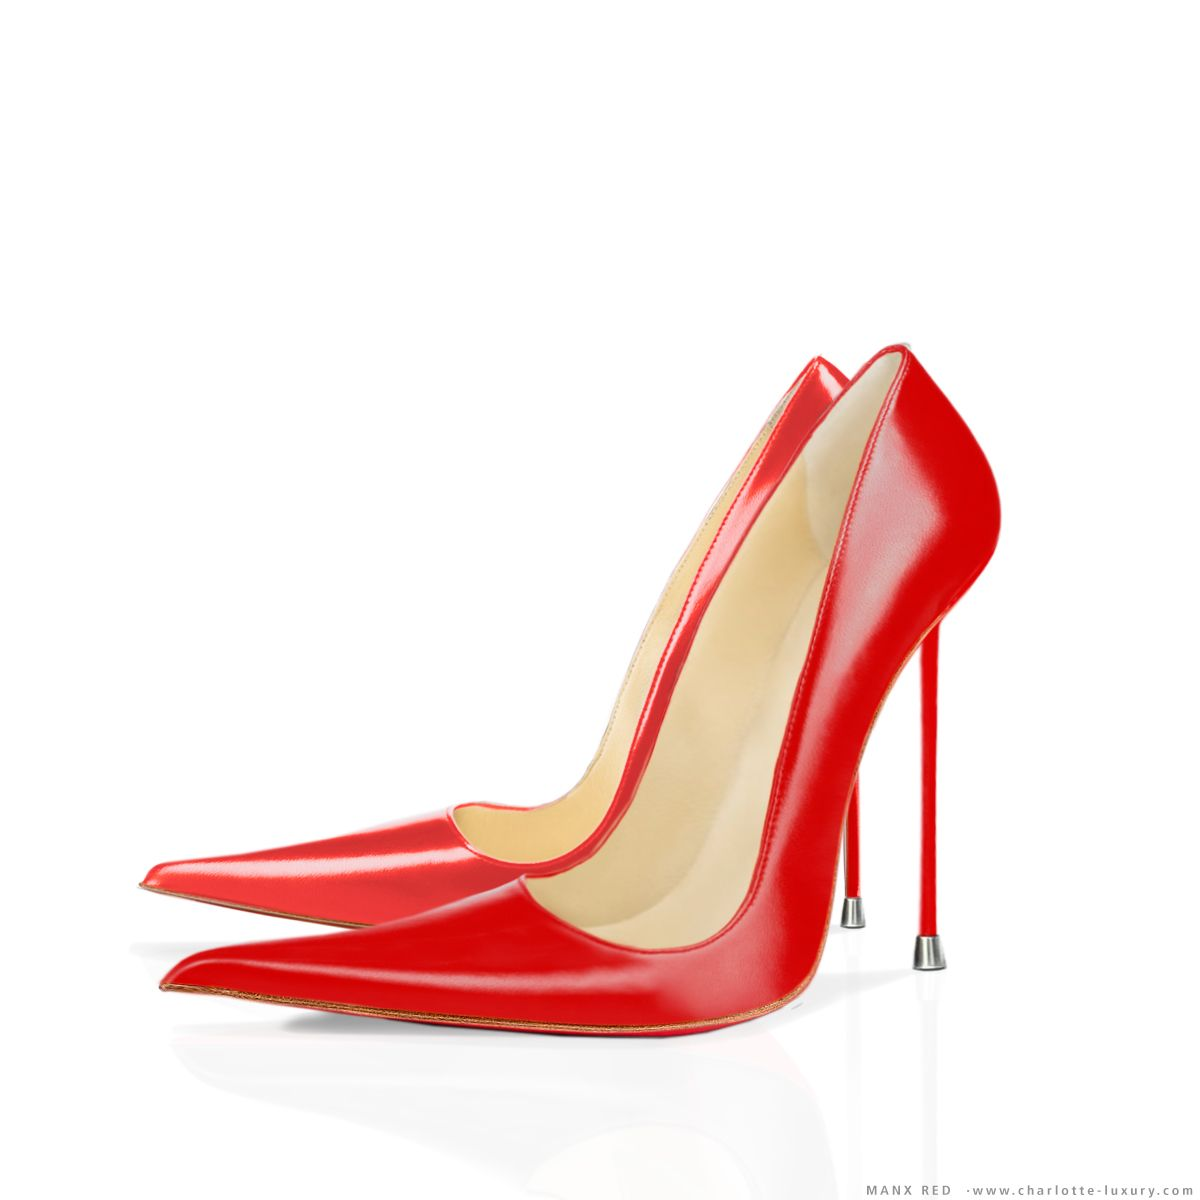 c74f35f3ecb Red sandy shoes grease - Red Leather High Heels   Even More Fashion ...